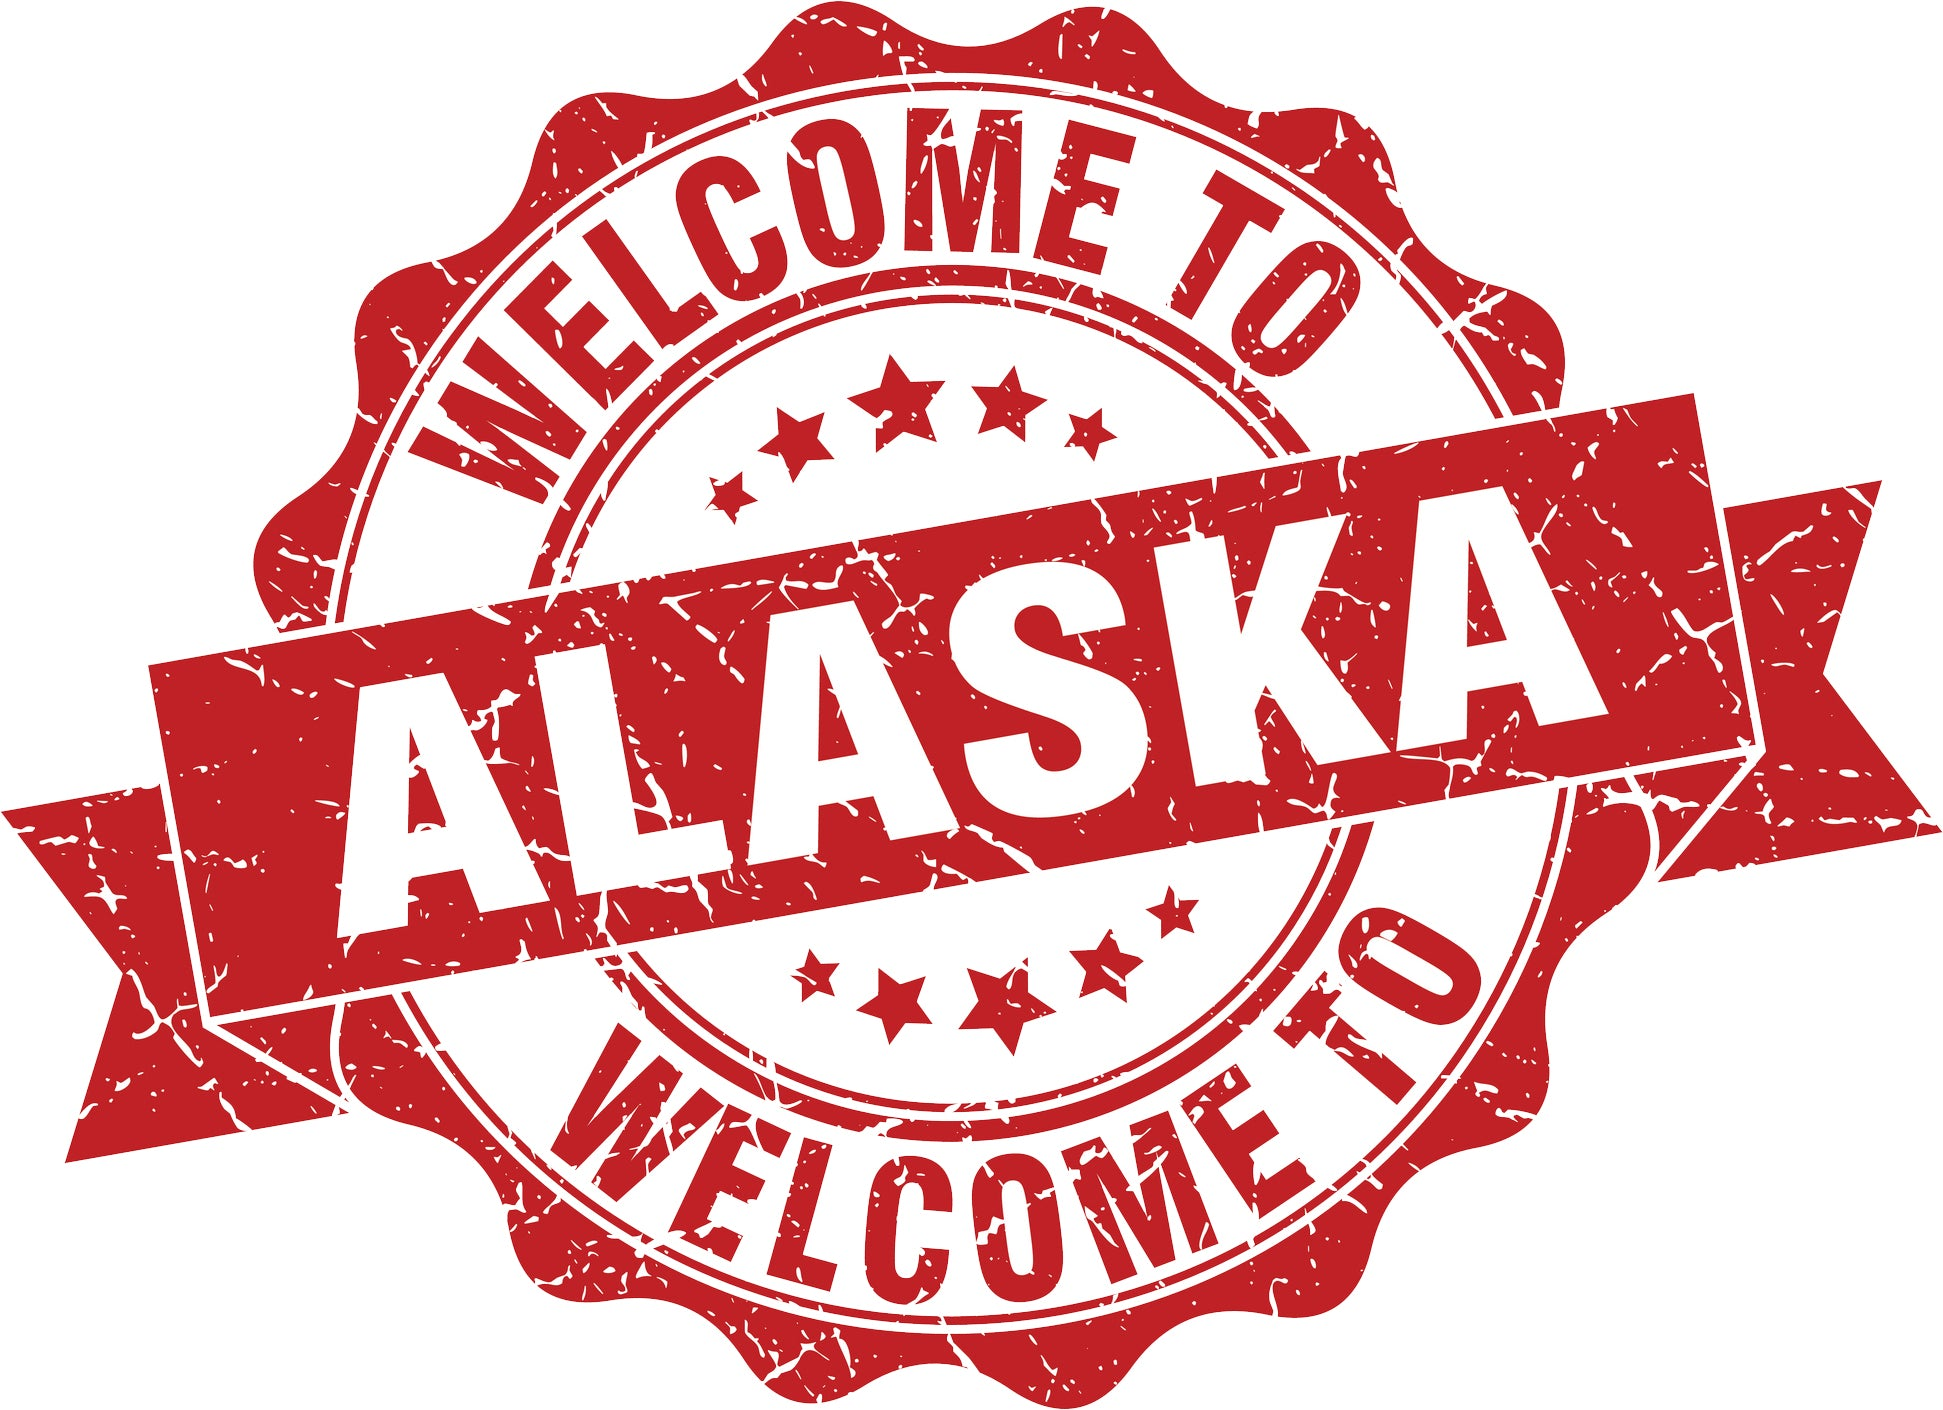 Cool Vintage Stamp Sign Cartoon Icon - Welcome to Alaska Vinyl Decal Sticker